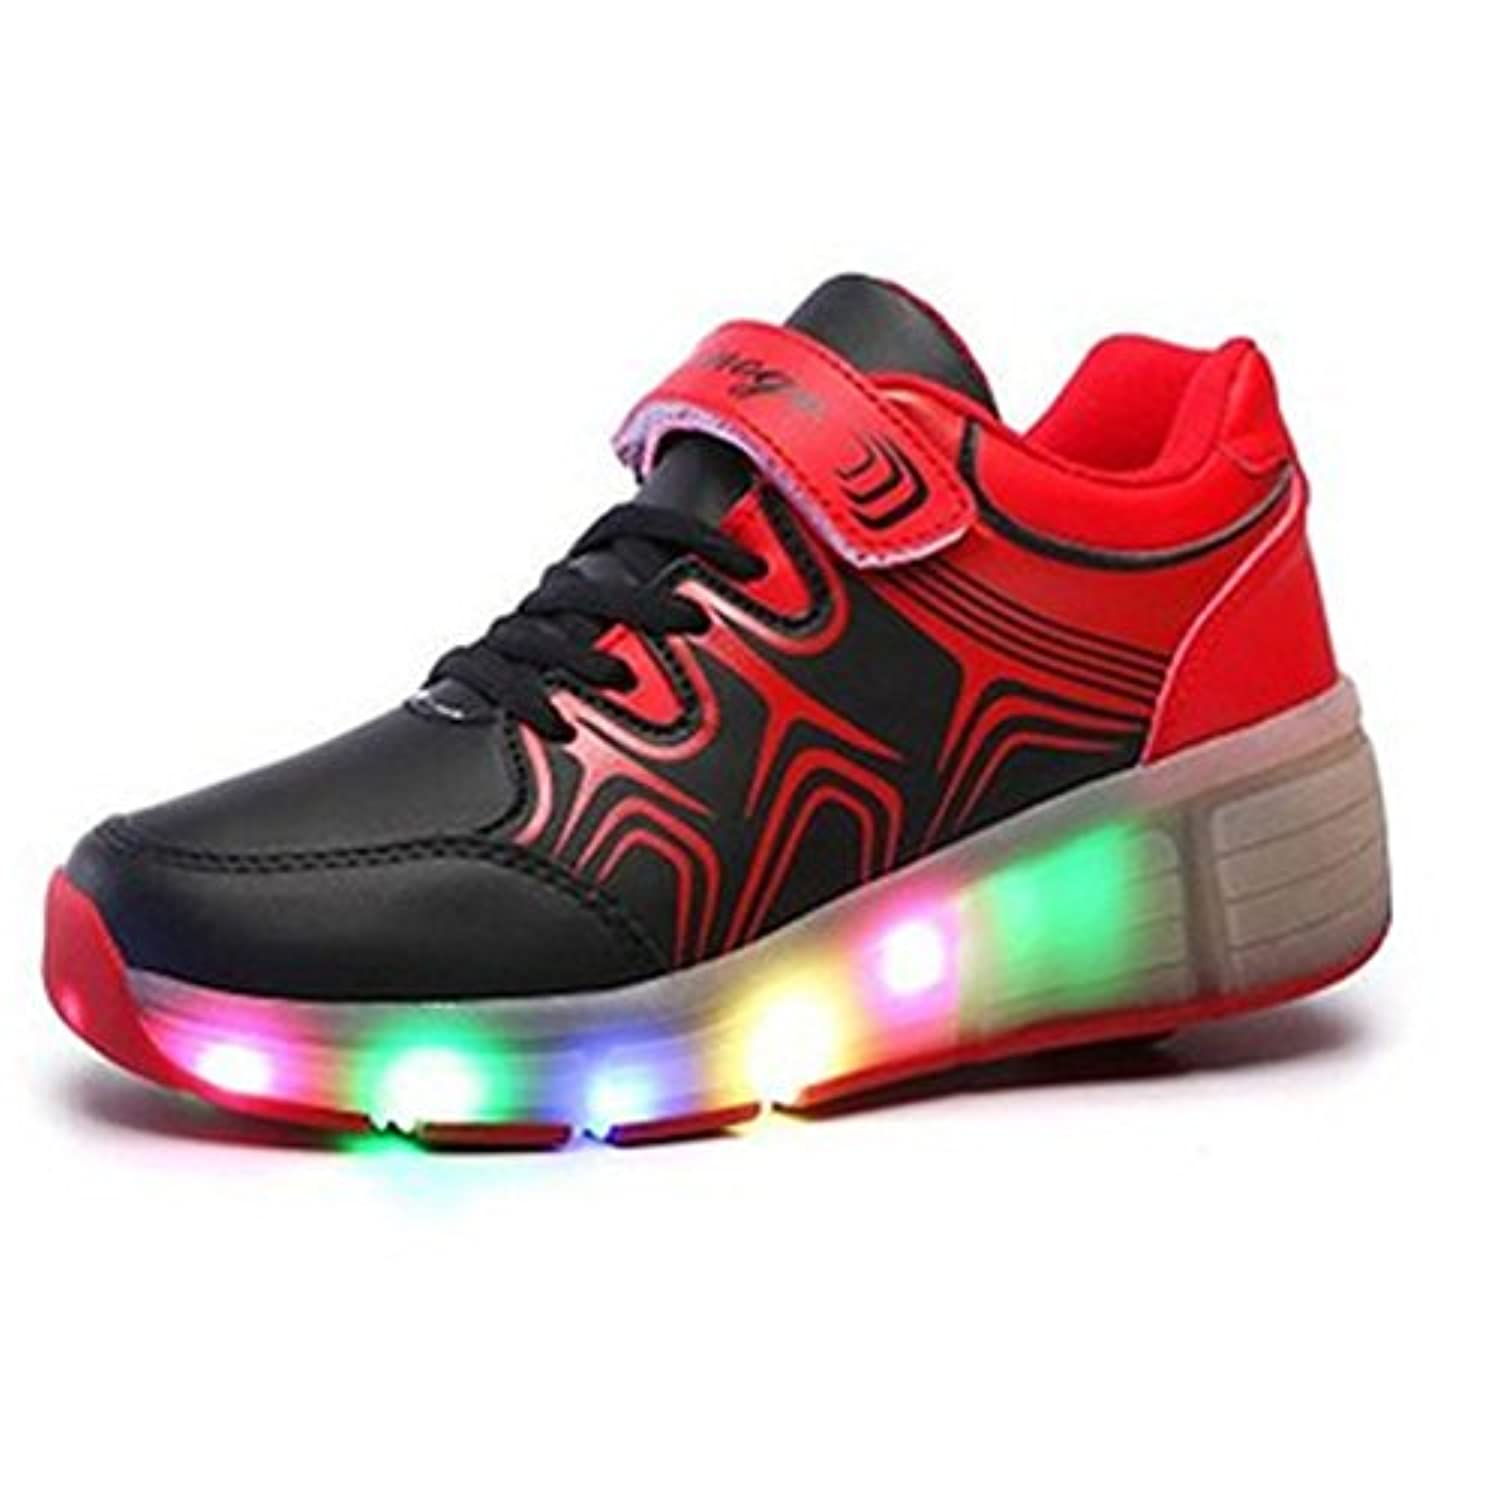 SGoodshoes Kids LED Light Sneakers Luminous Trainers Roller Skate Flying Shoes With A Wheel Adult Flashing Shoes